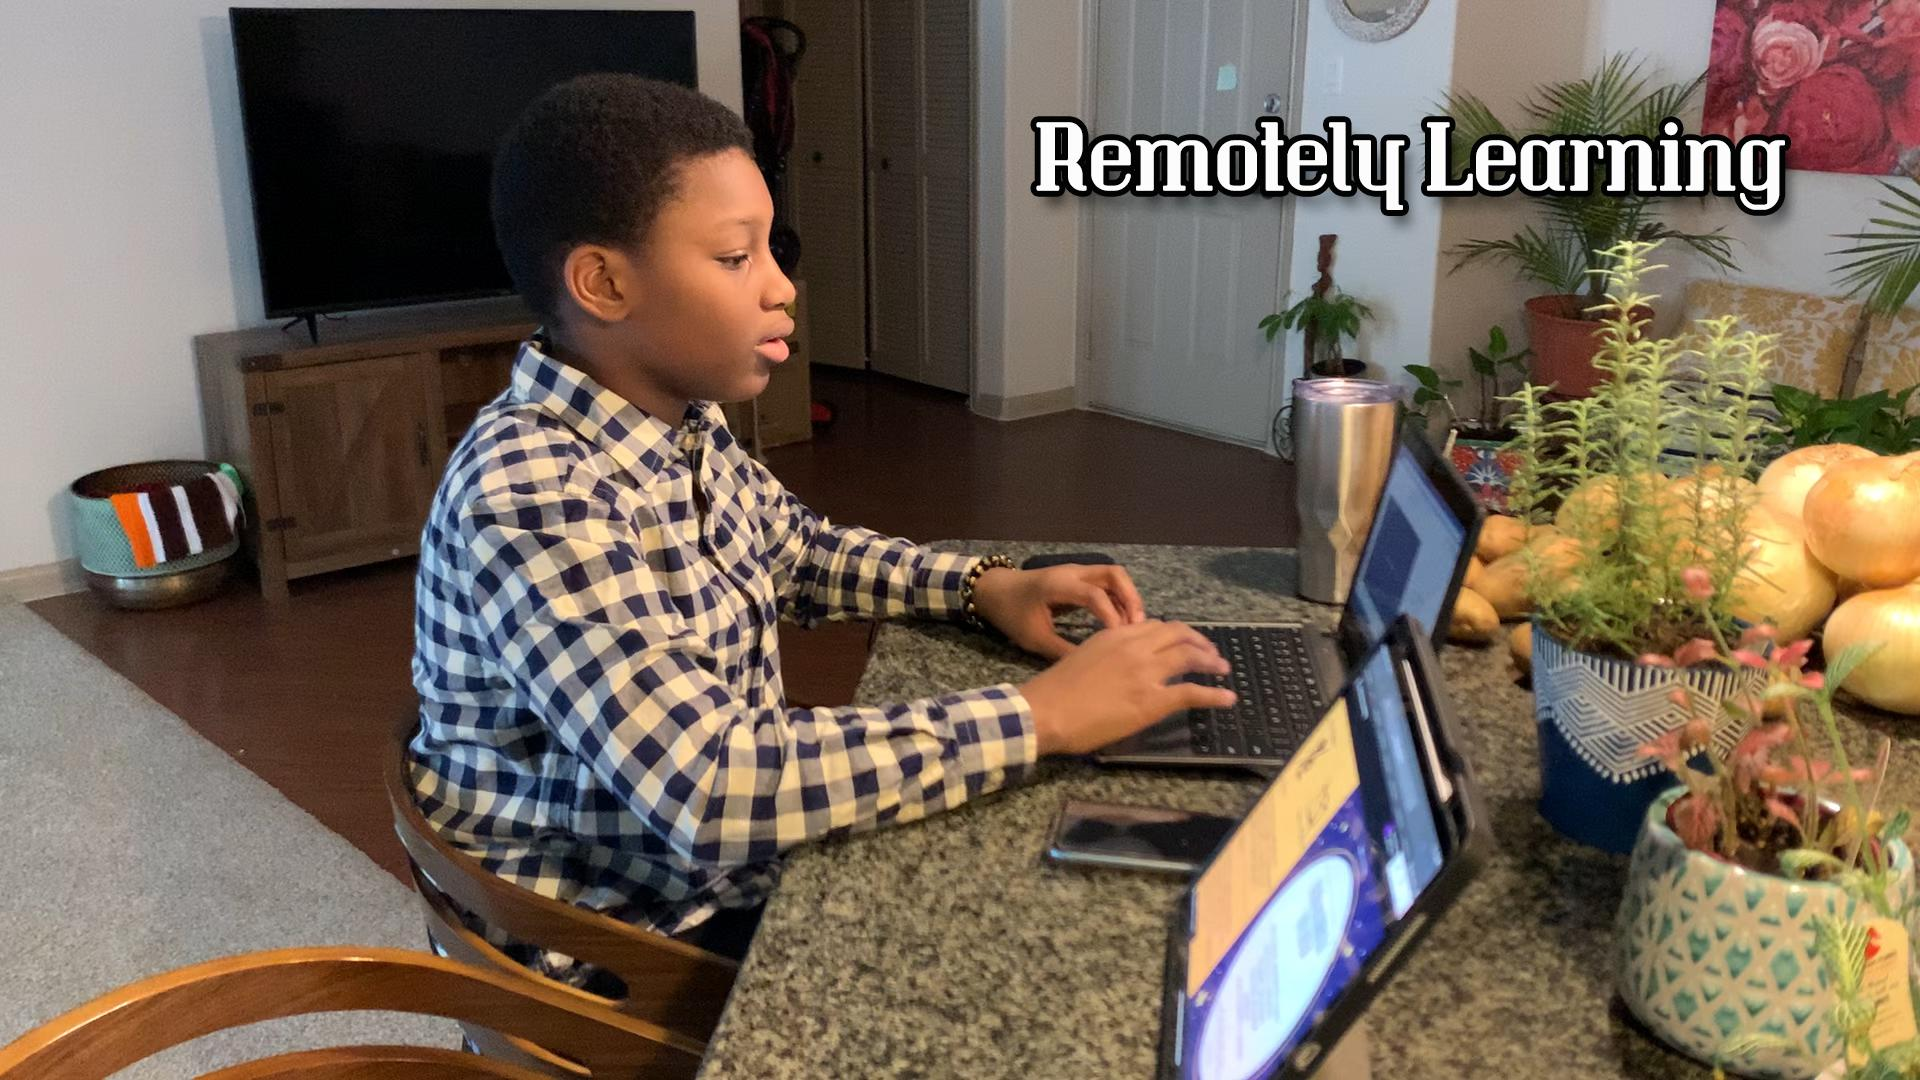 Remotely Learning